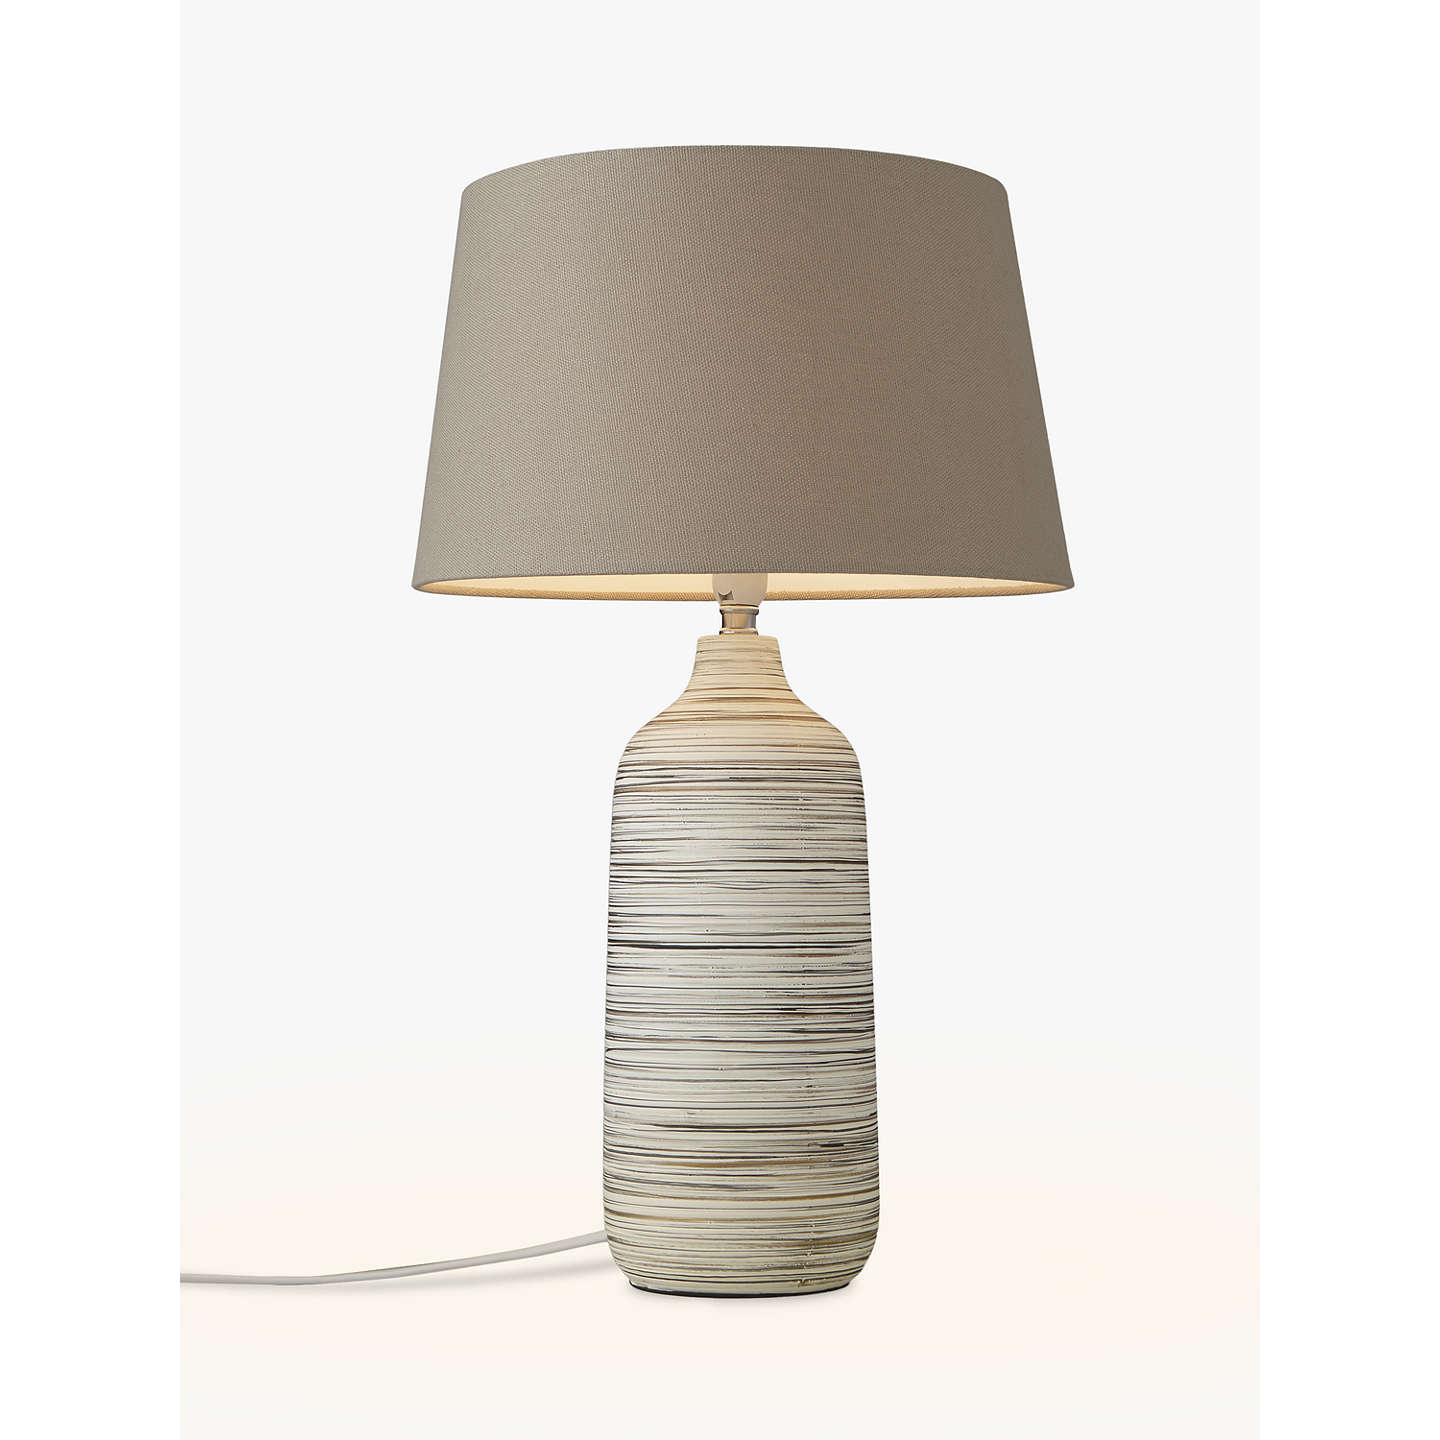 John lewis frehel table lamp at john lewis buyjohn lewis frehel table lamp online at johnlewis aloadofball Gallery